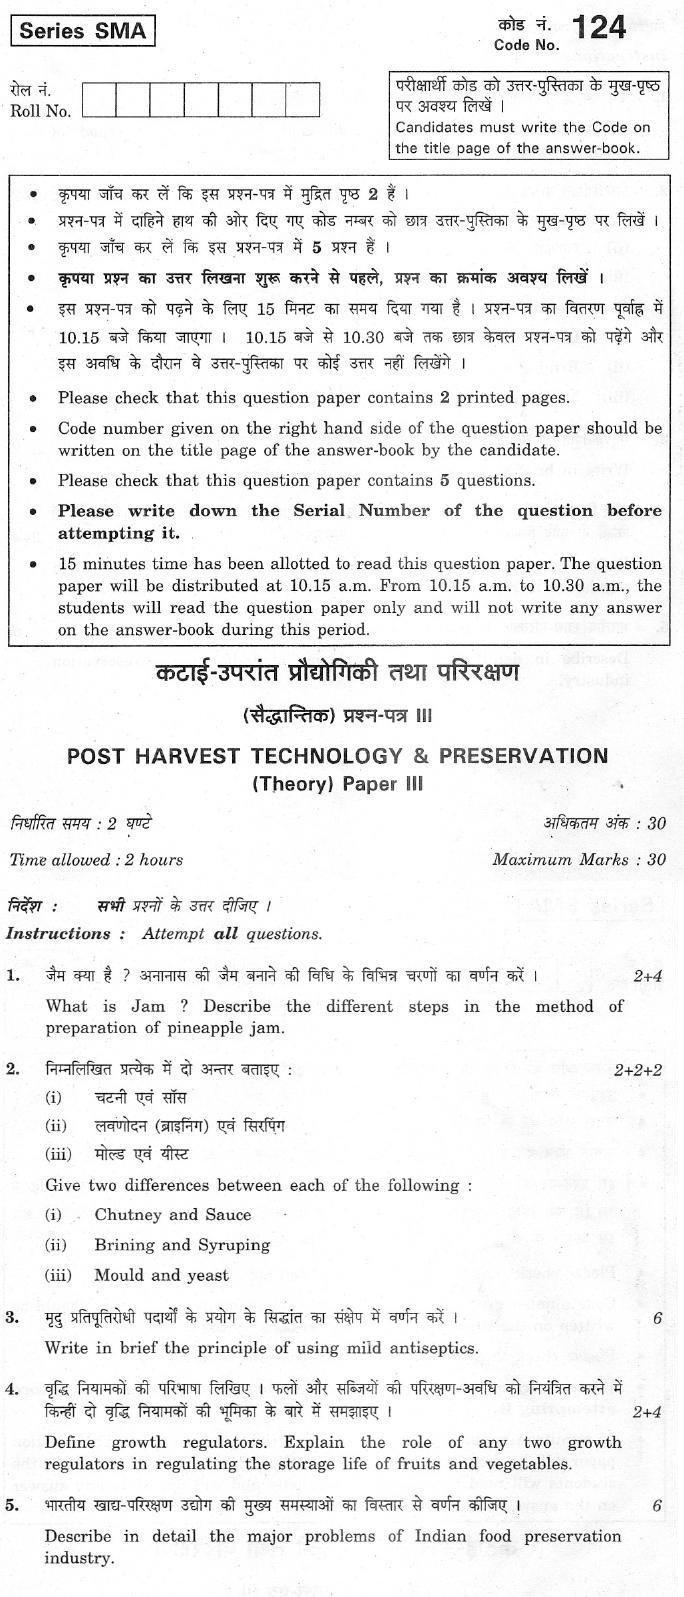 CBSE Class XII Previous Year Question Paper 2012 Post Harvest Technology & Preservation Paper III